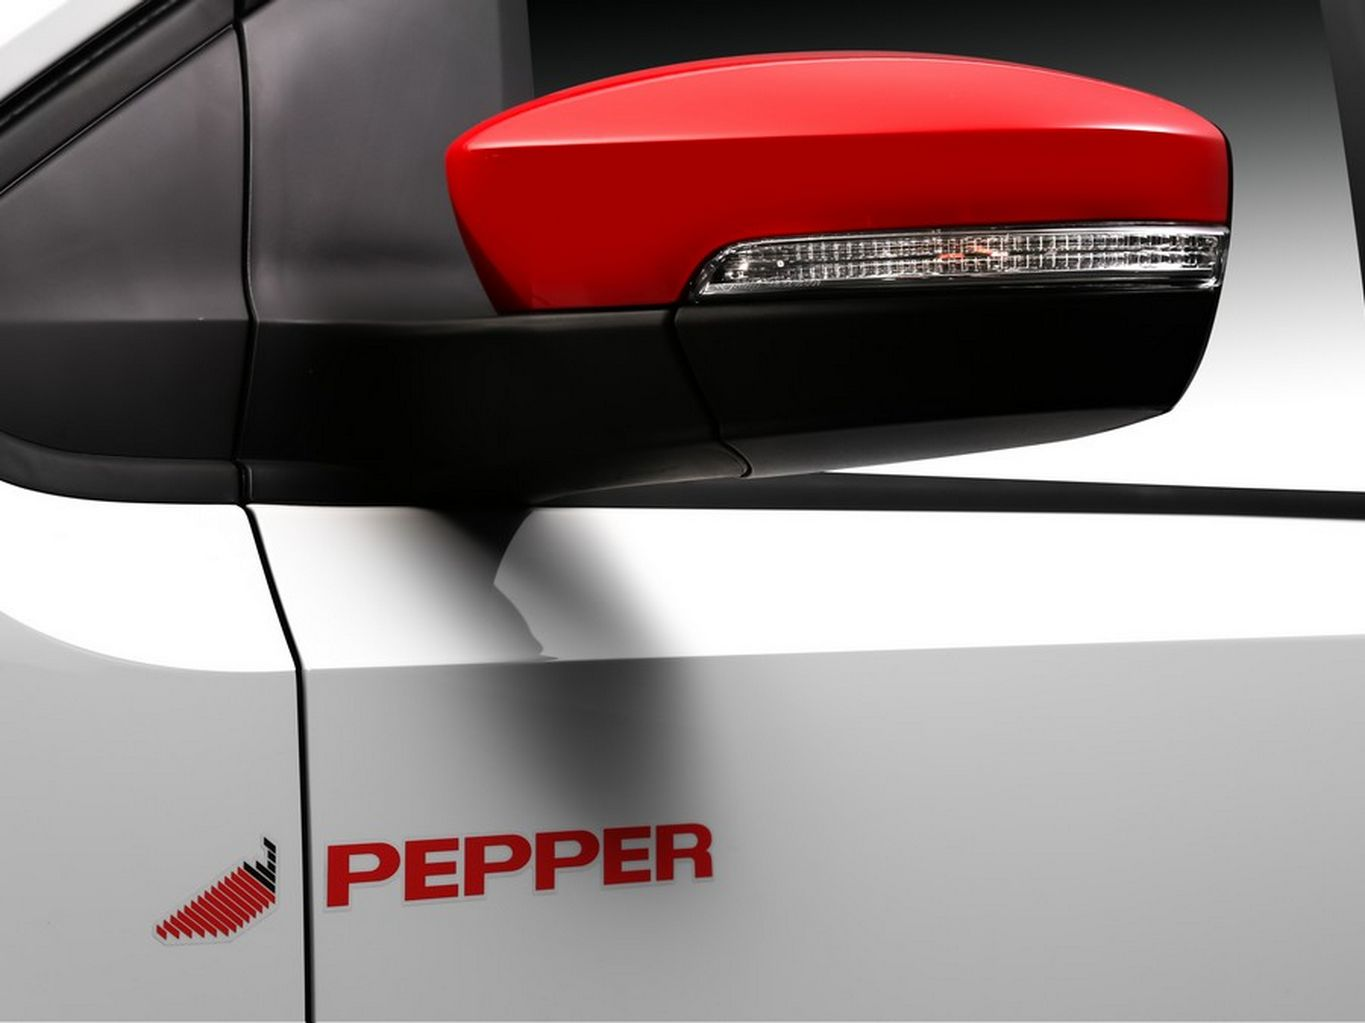 VW up! Pepper